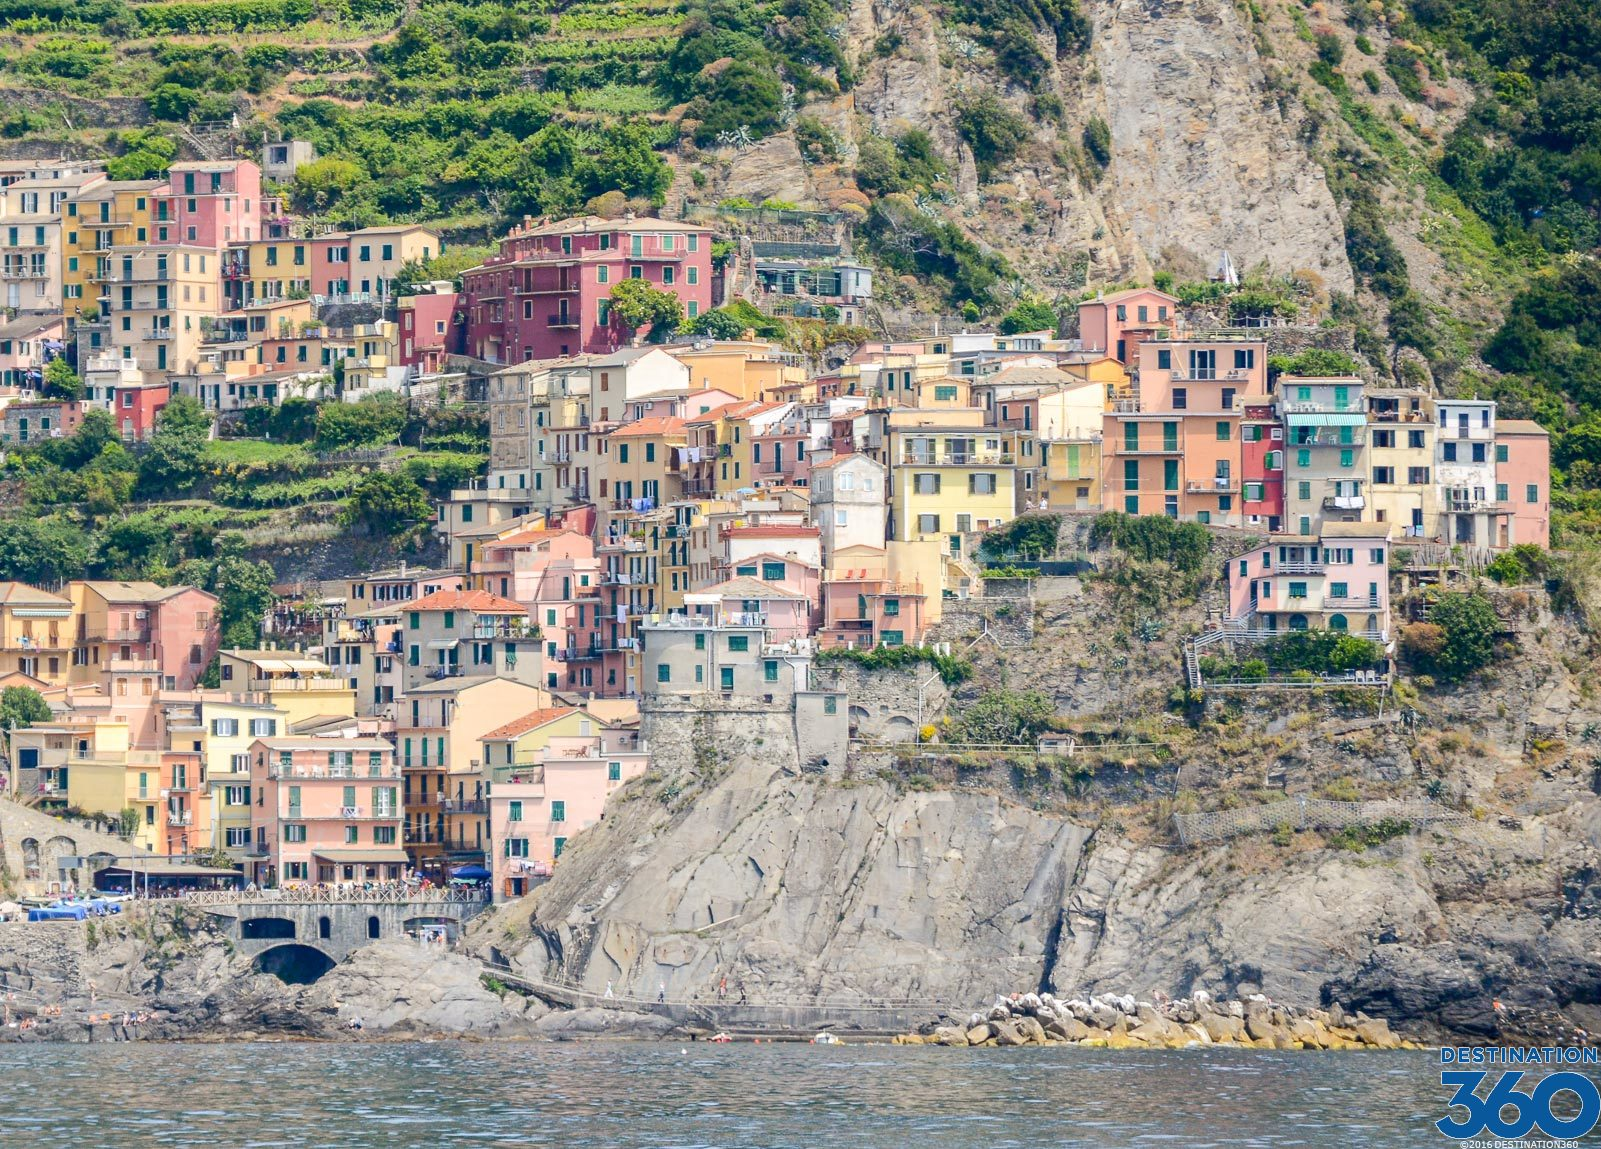 Hotels in Corniglia